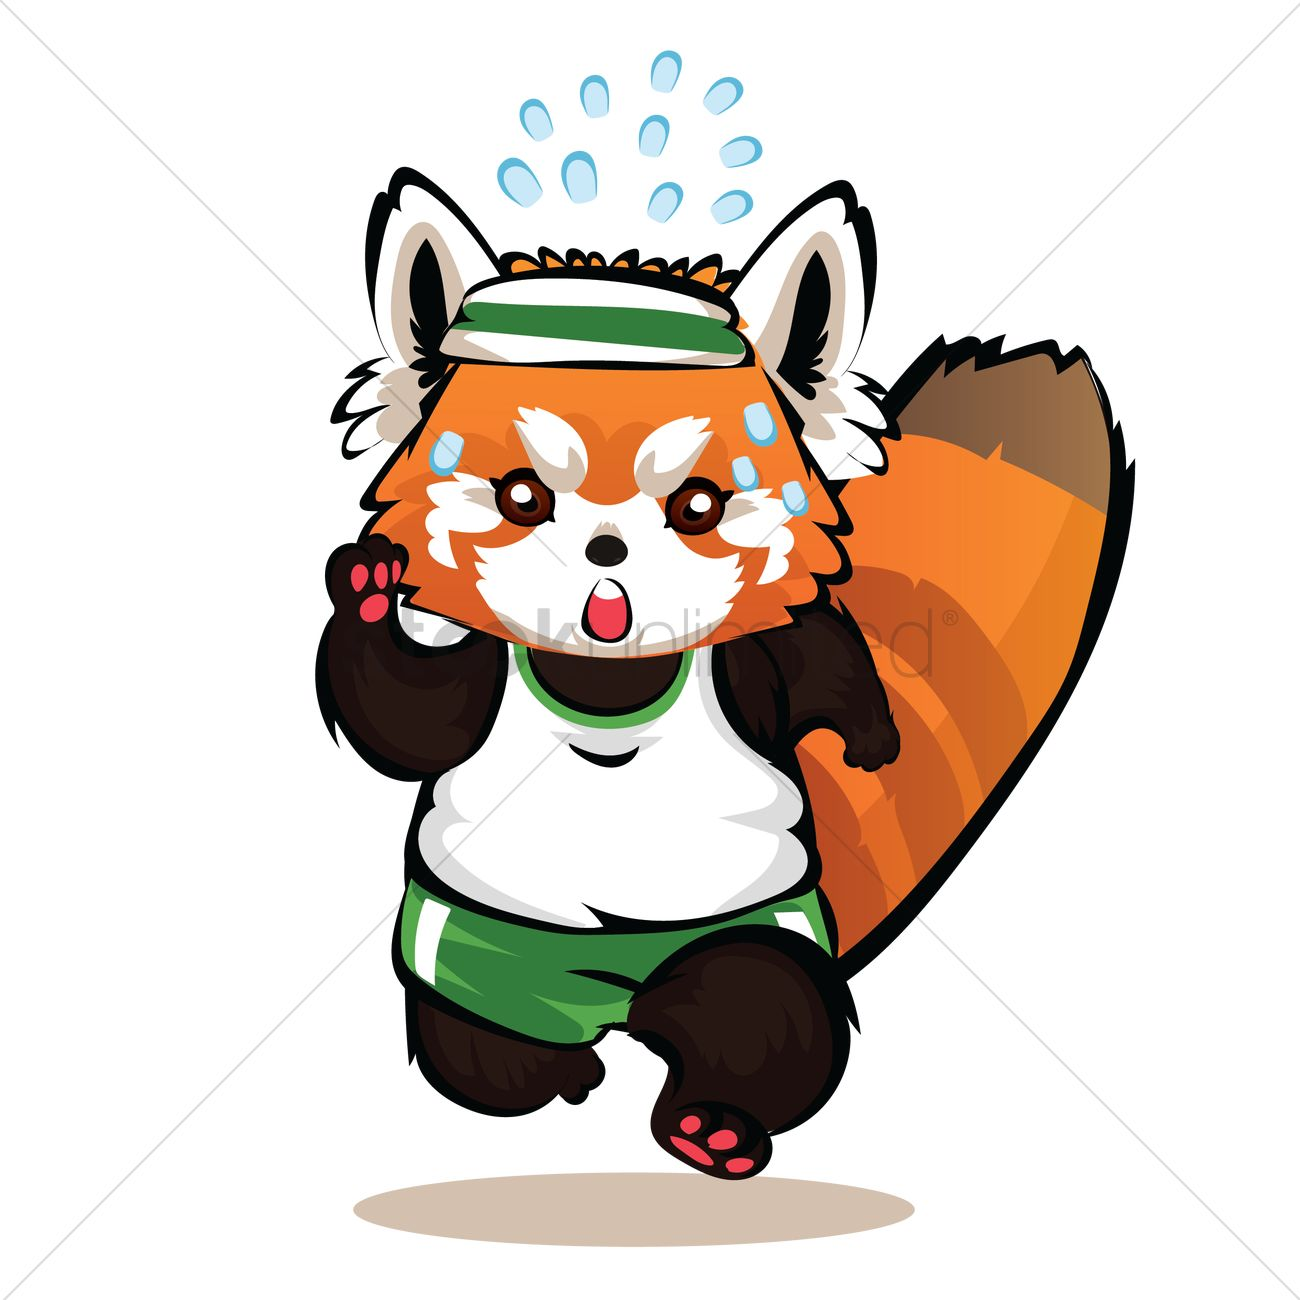 Cartoon Characters Exercising : Cartoon red panda working out vector image